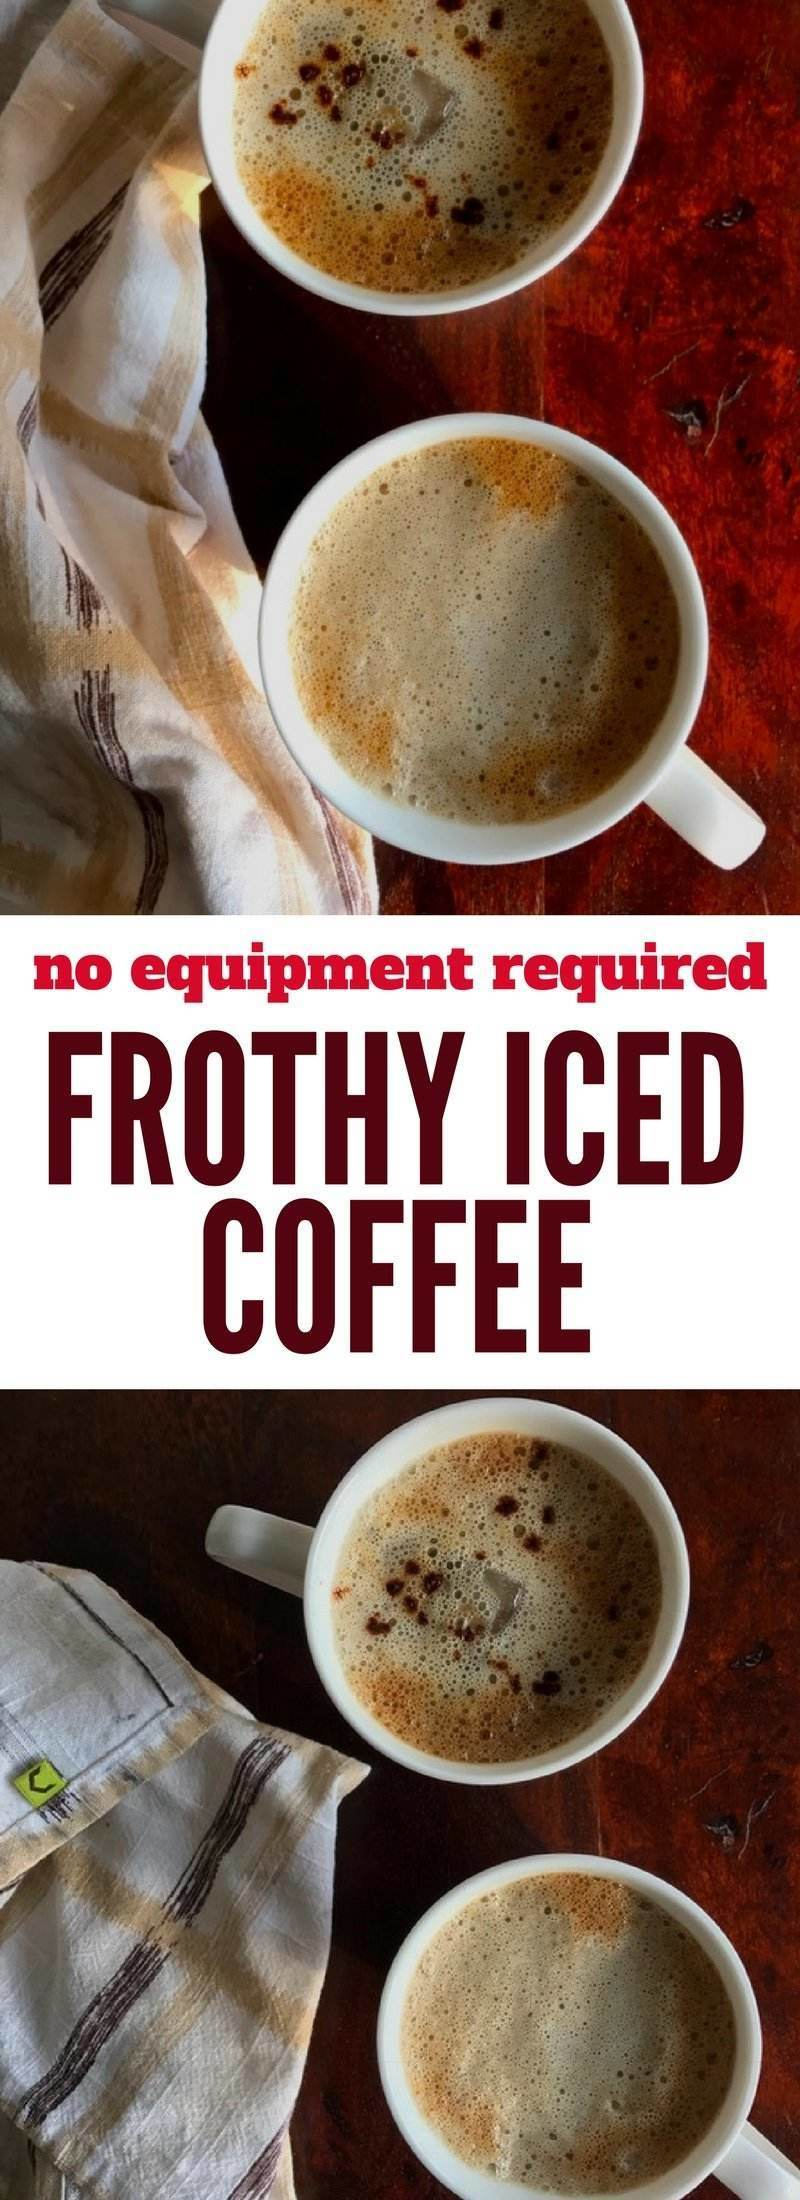 No equipment required to make this ultimate frothy iced coffee, prepared using instant coffee granules.